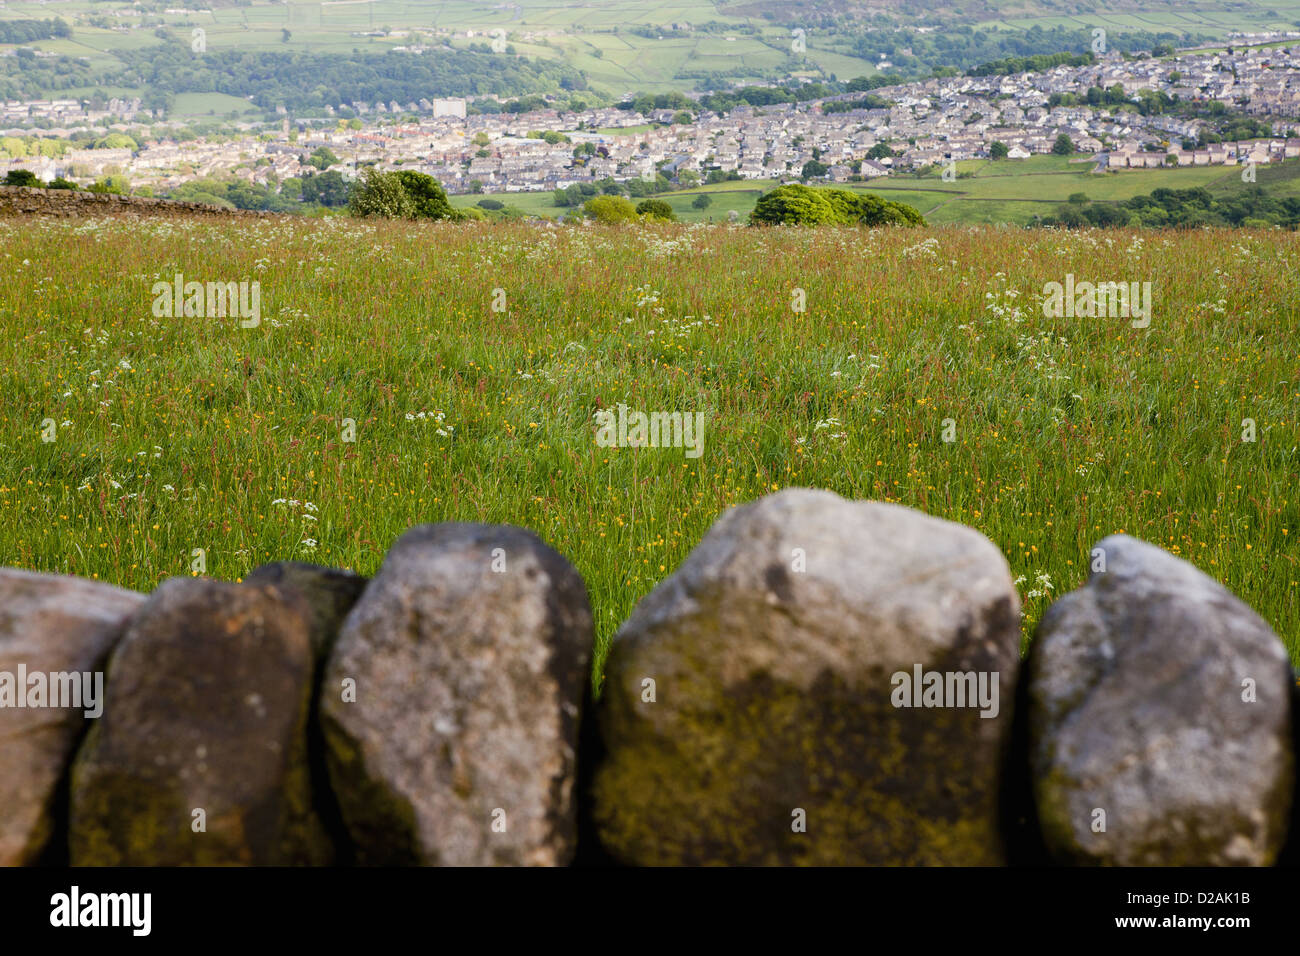 Stone wall in rural landscape - Stock Image